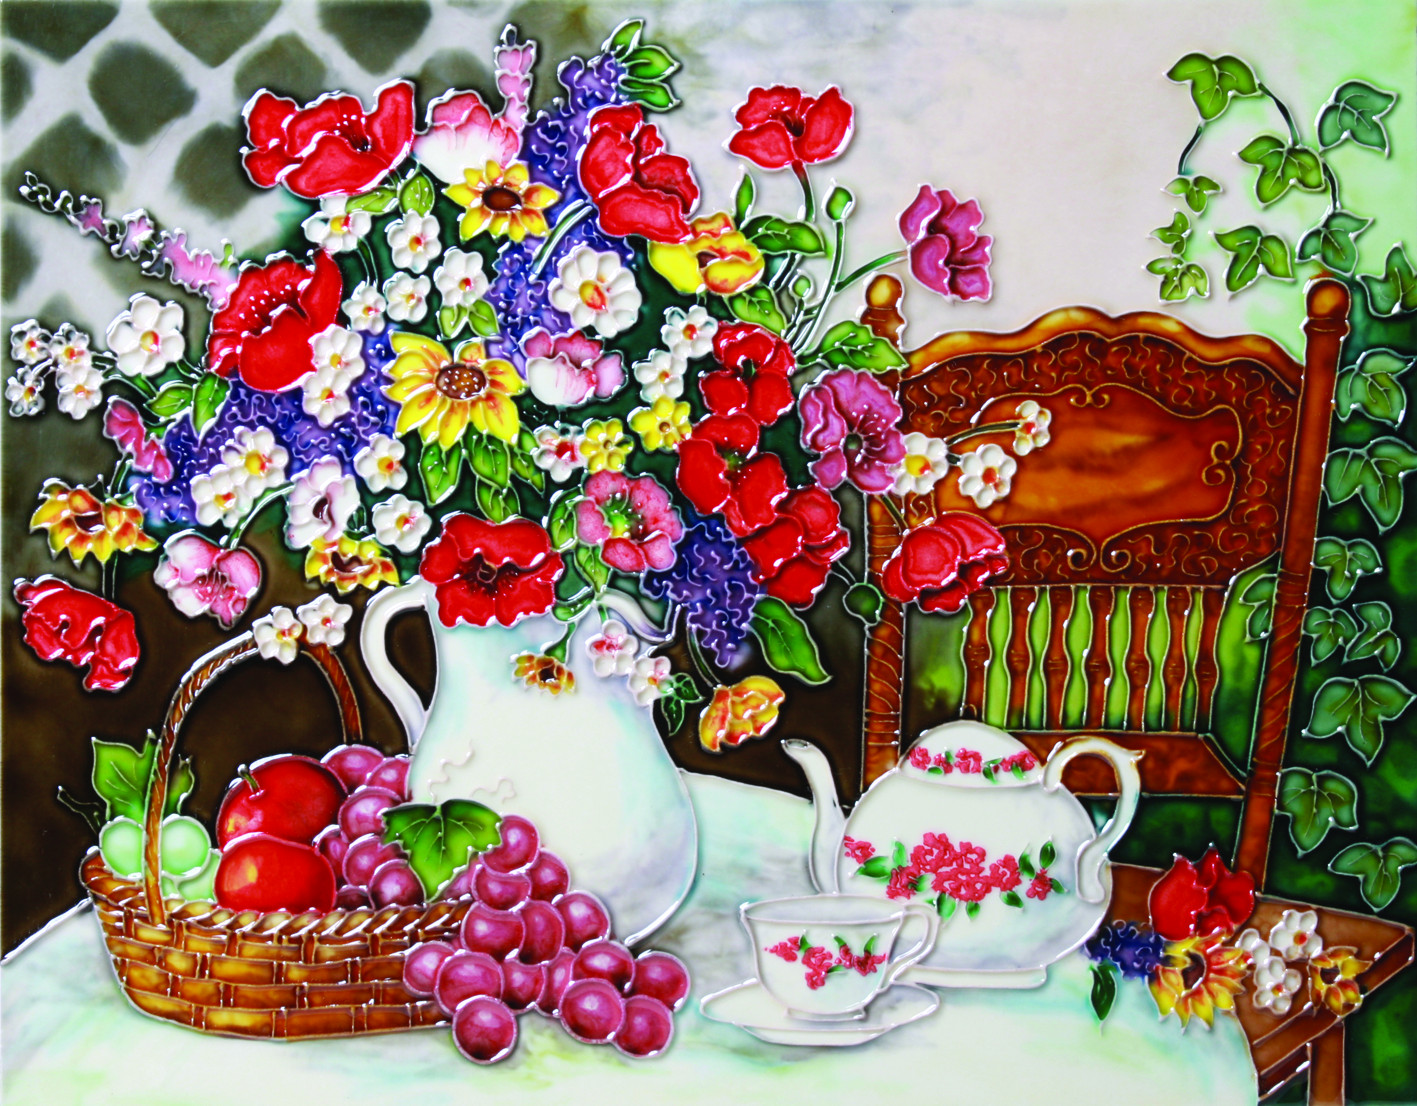 Afternoon Tea 1 11×14 (520505)